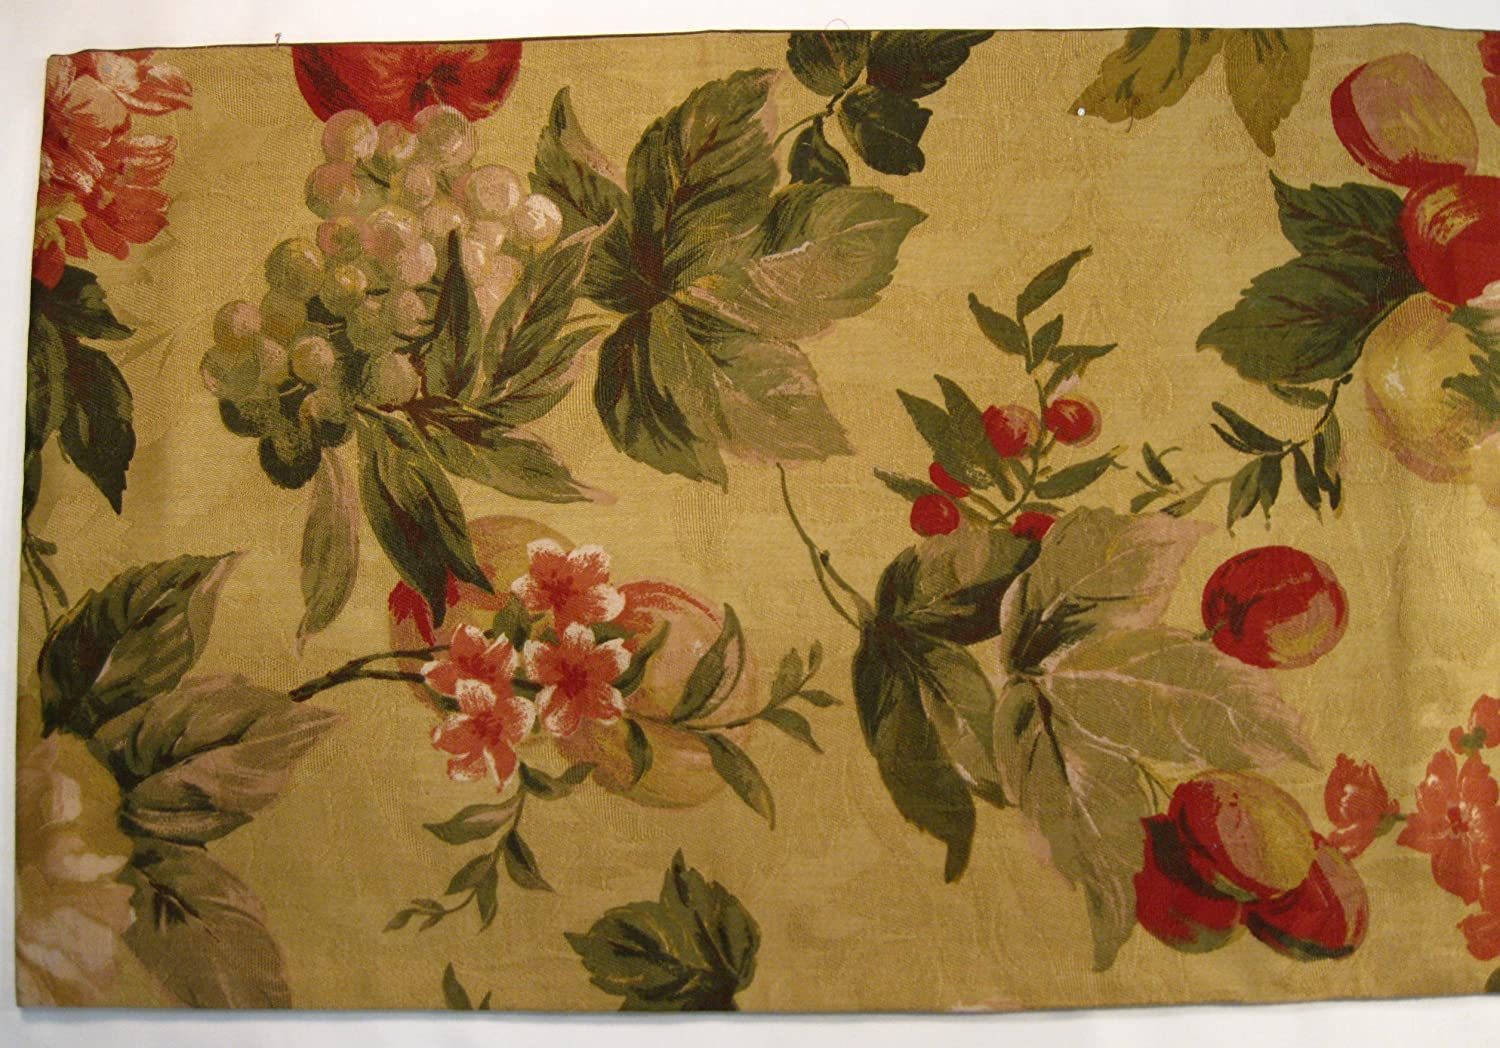 Karen Lee Ballard 90 x 16 Green Leaves and Red Cherries Table Runner Made in The USA Magnolia Blossoms